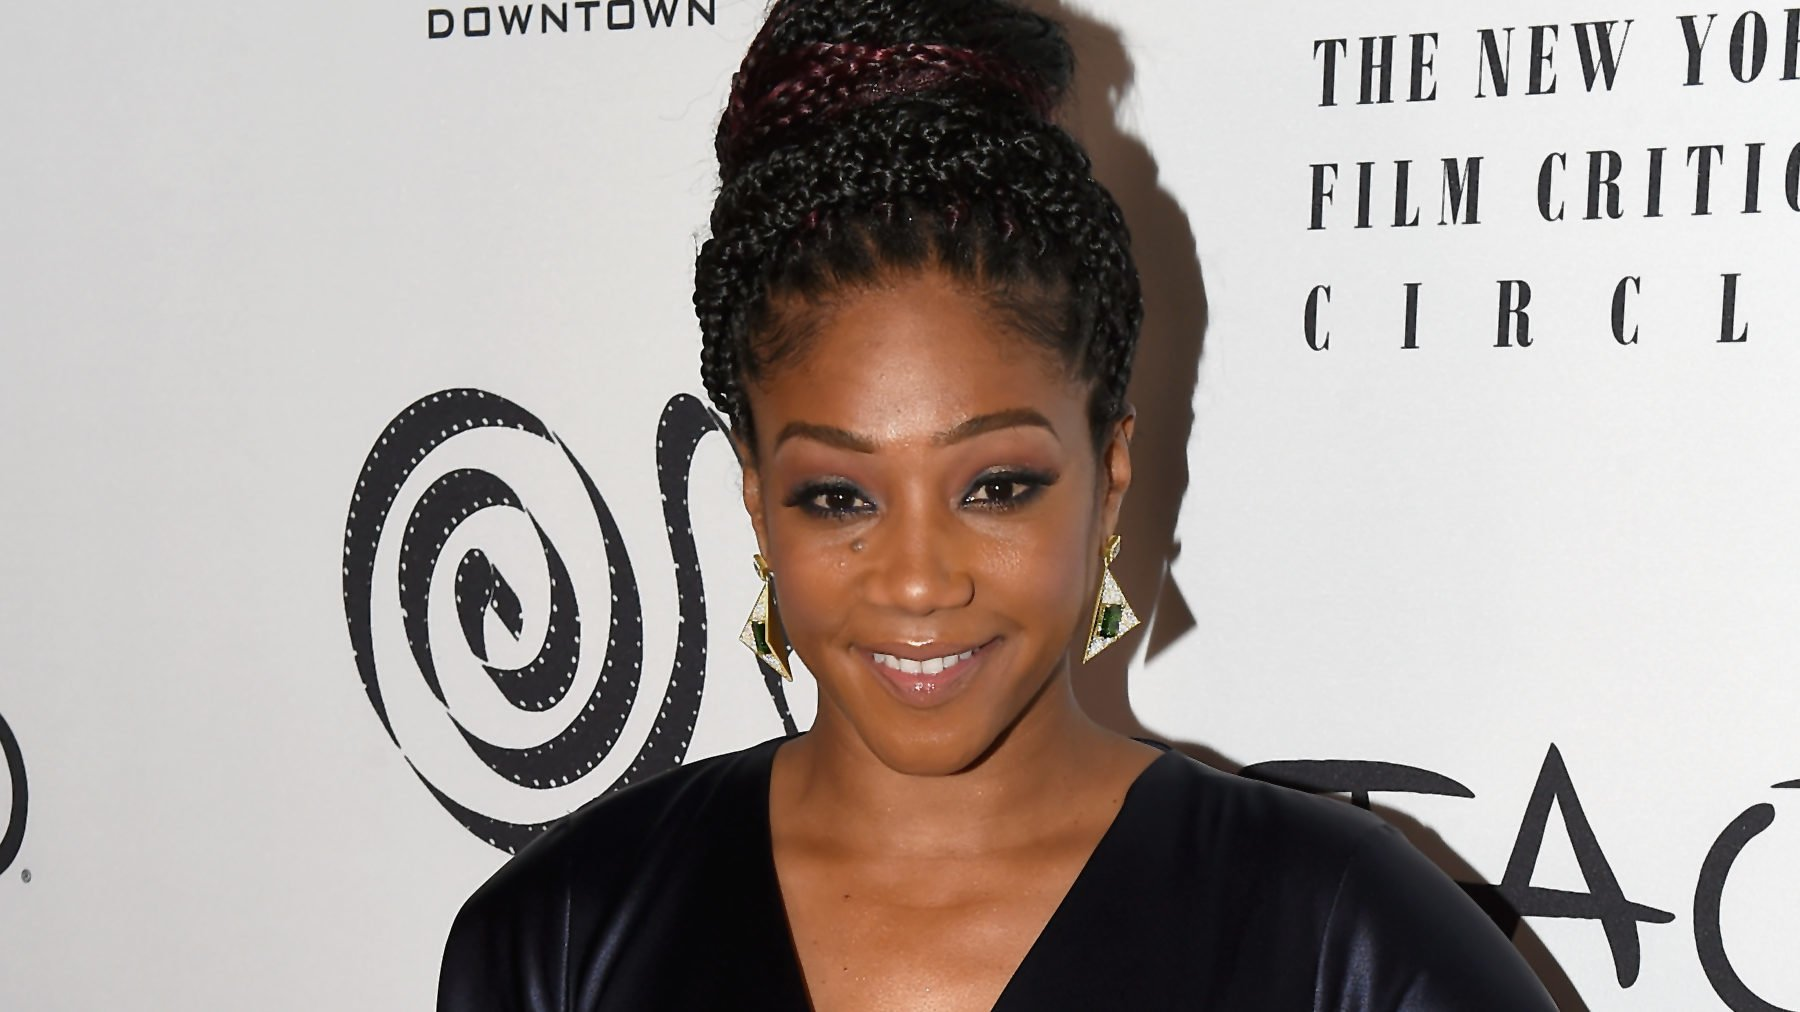 Tiffany Haddish delivers epic 17-minute acceptance speech at NYFCC Awards